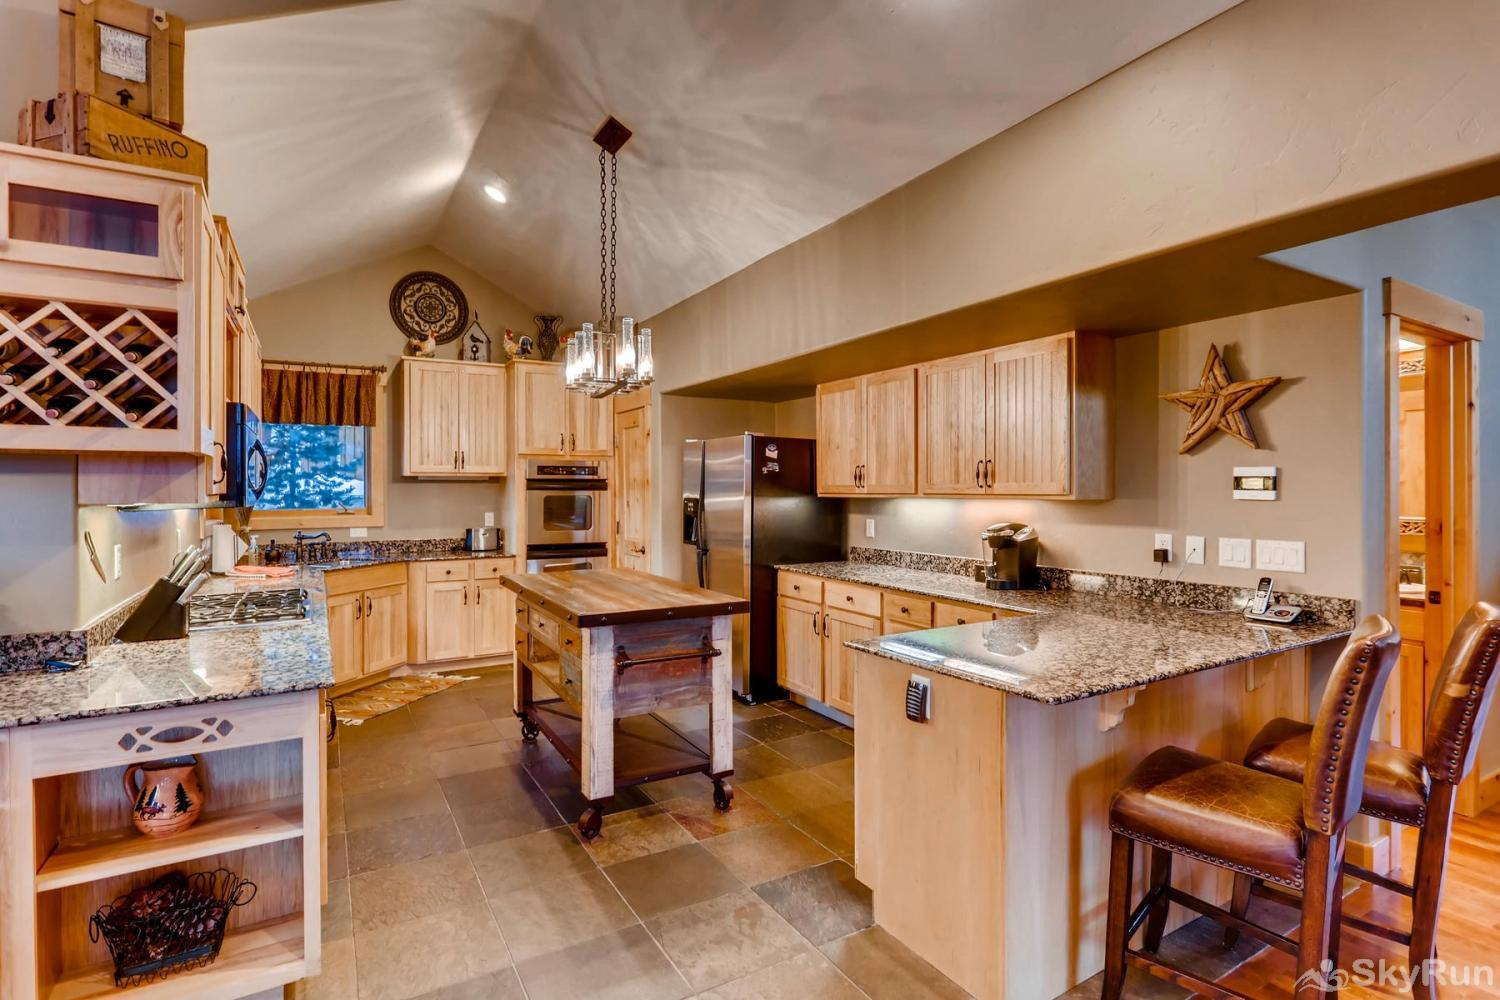 Nangle Woods Retreat Modern kitchen with stainless steel appliances